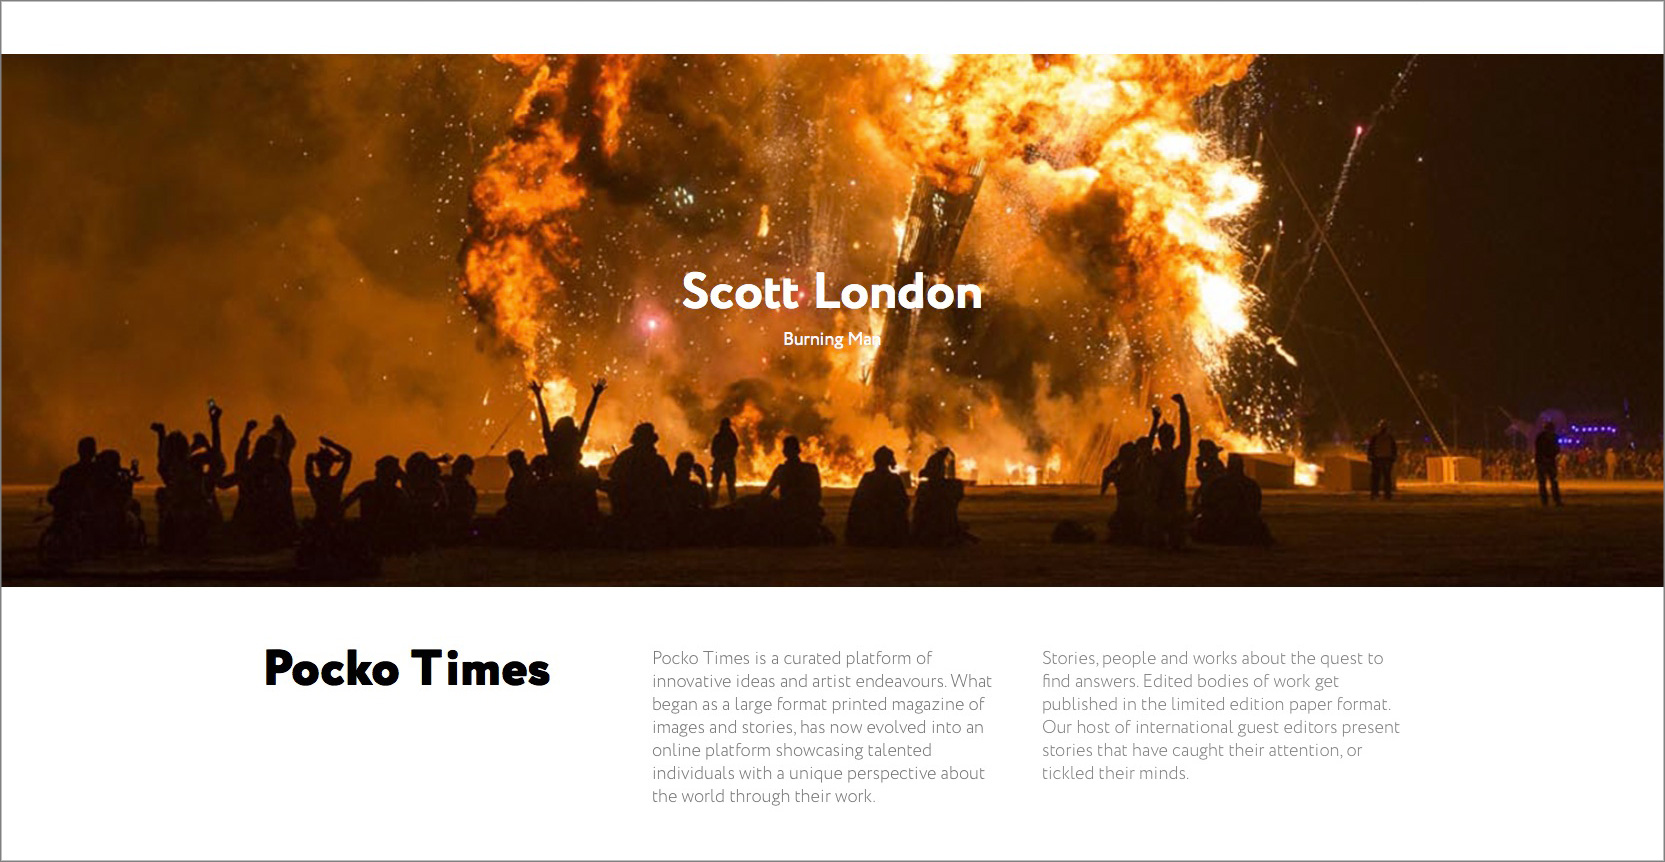 The Pocko Times features Scott London's photographs of Burning Man